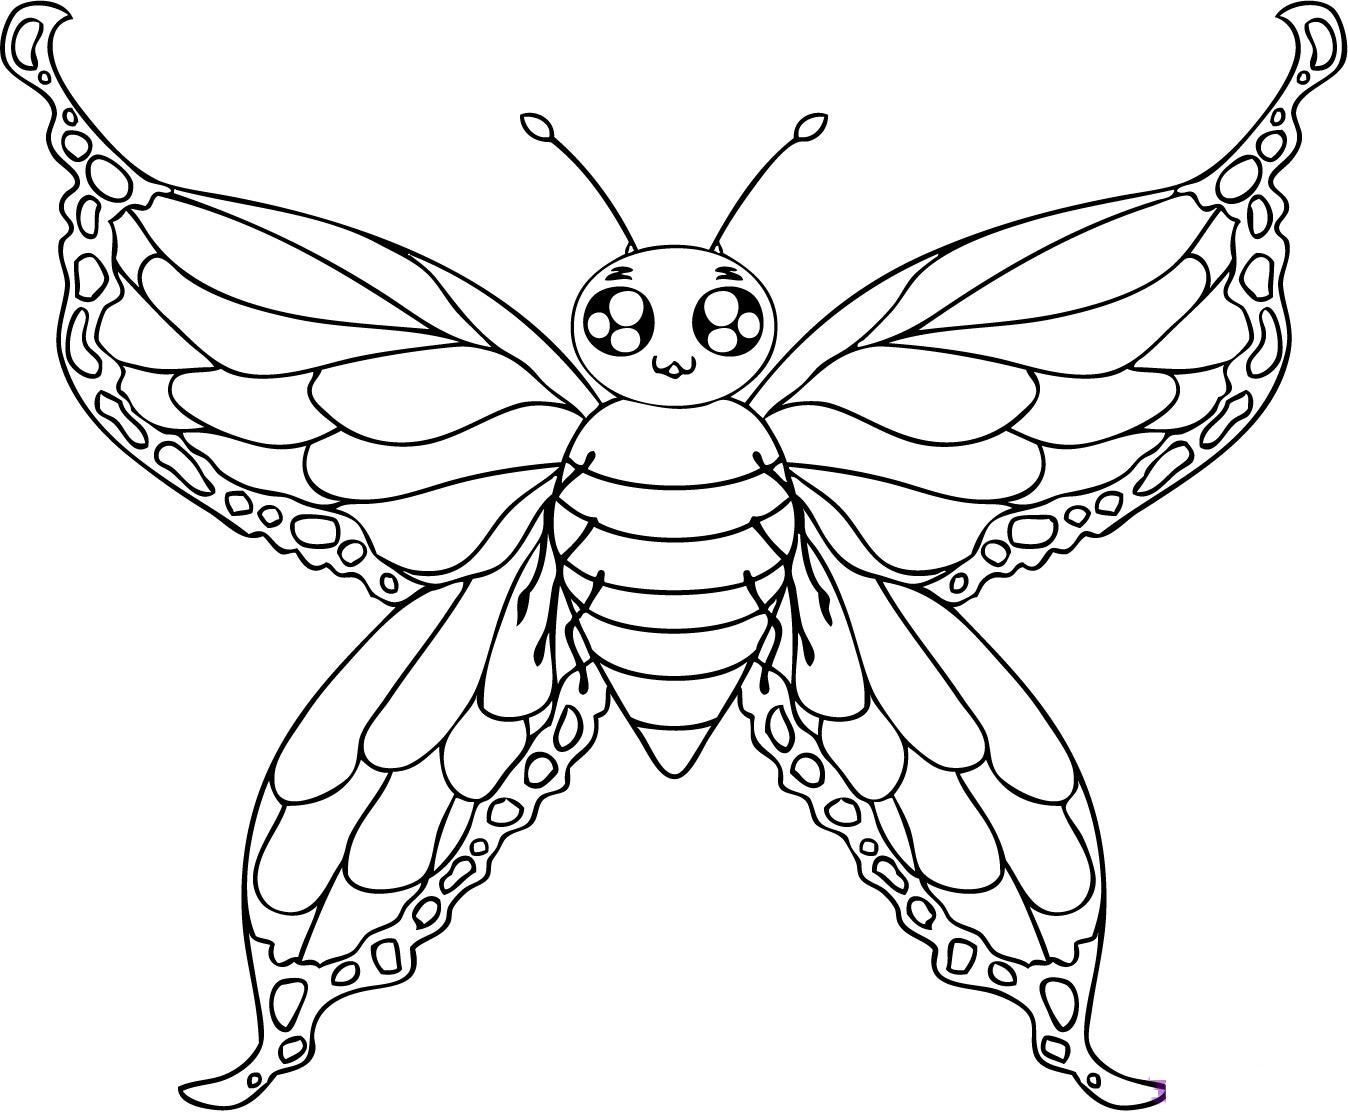 Colour in pictures of butterflies children coloring - Awesome Butterfly Coloring Pages For Kids Printable Special Picture